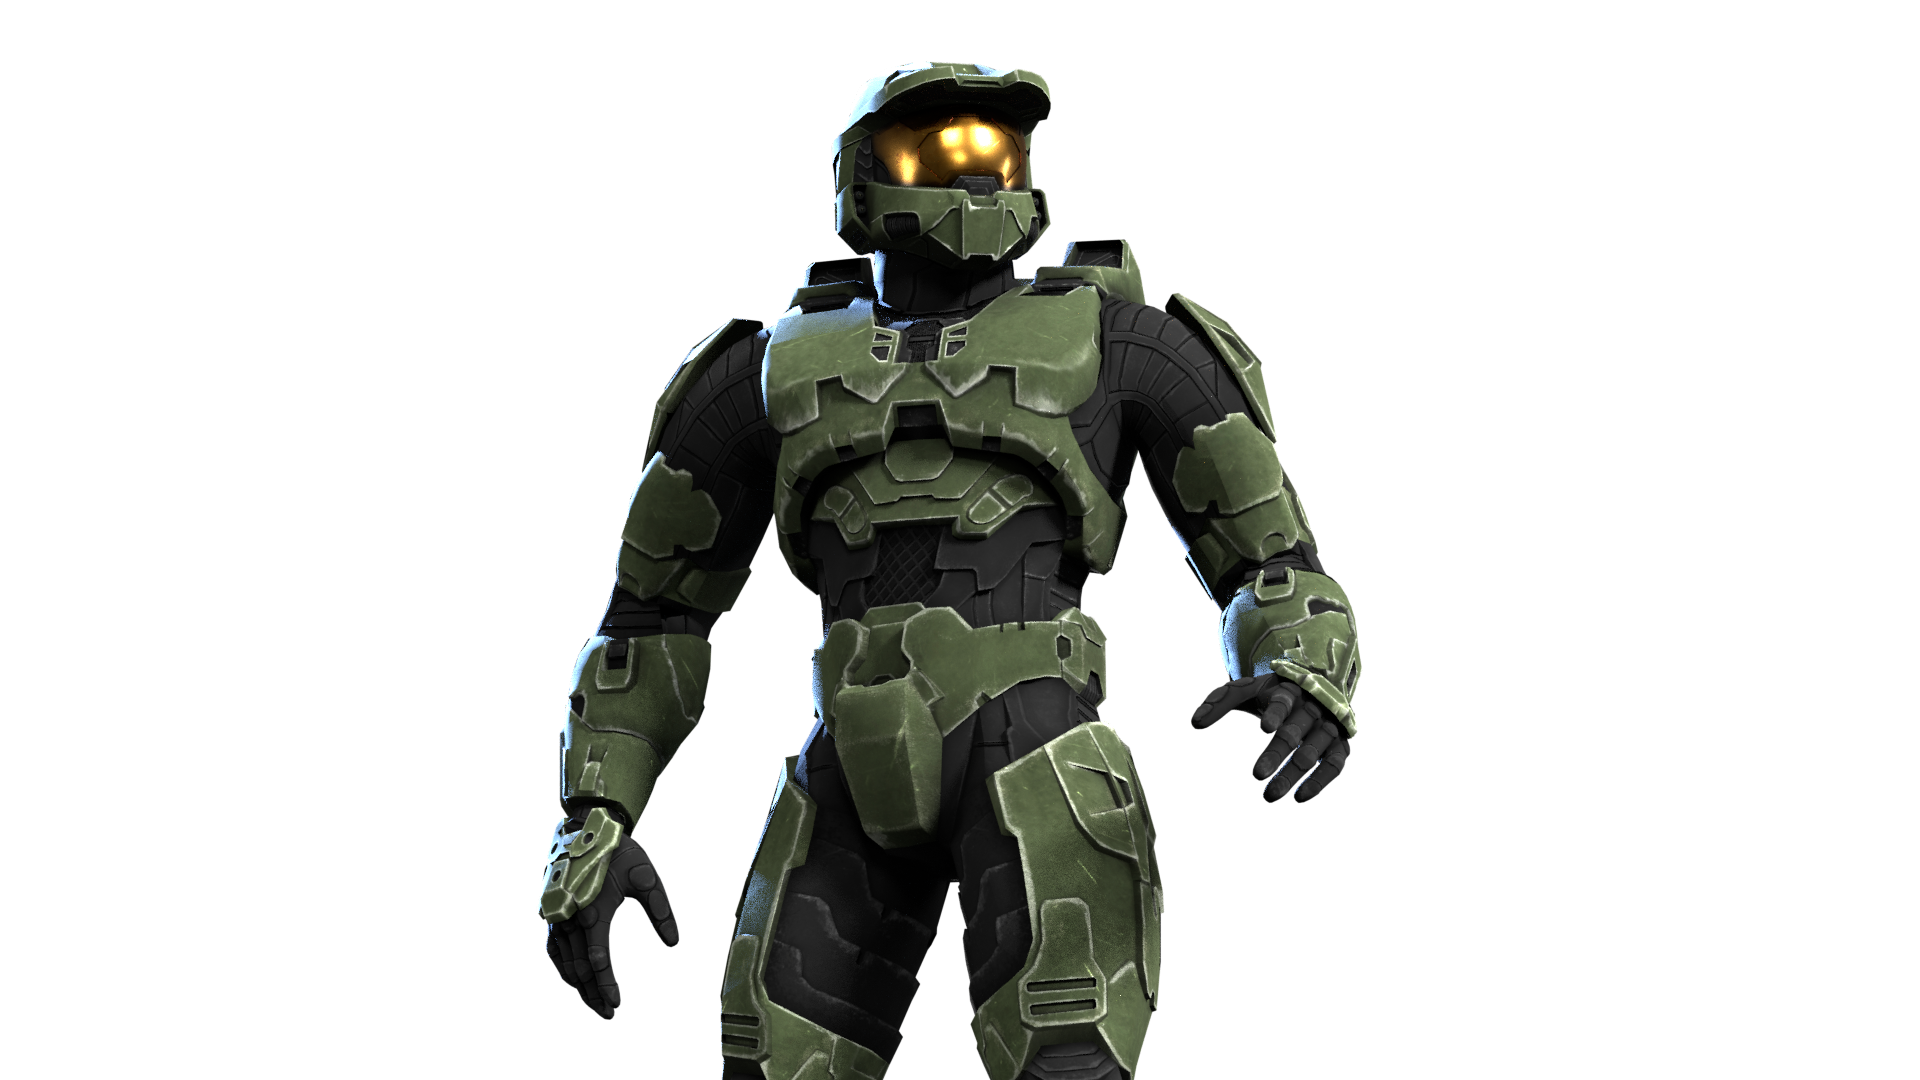 Master chief halo 5 png. Render